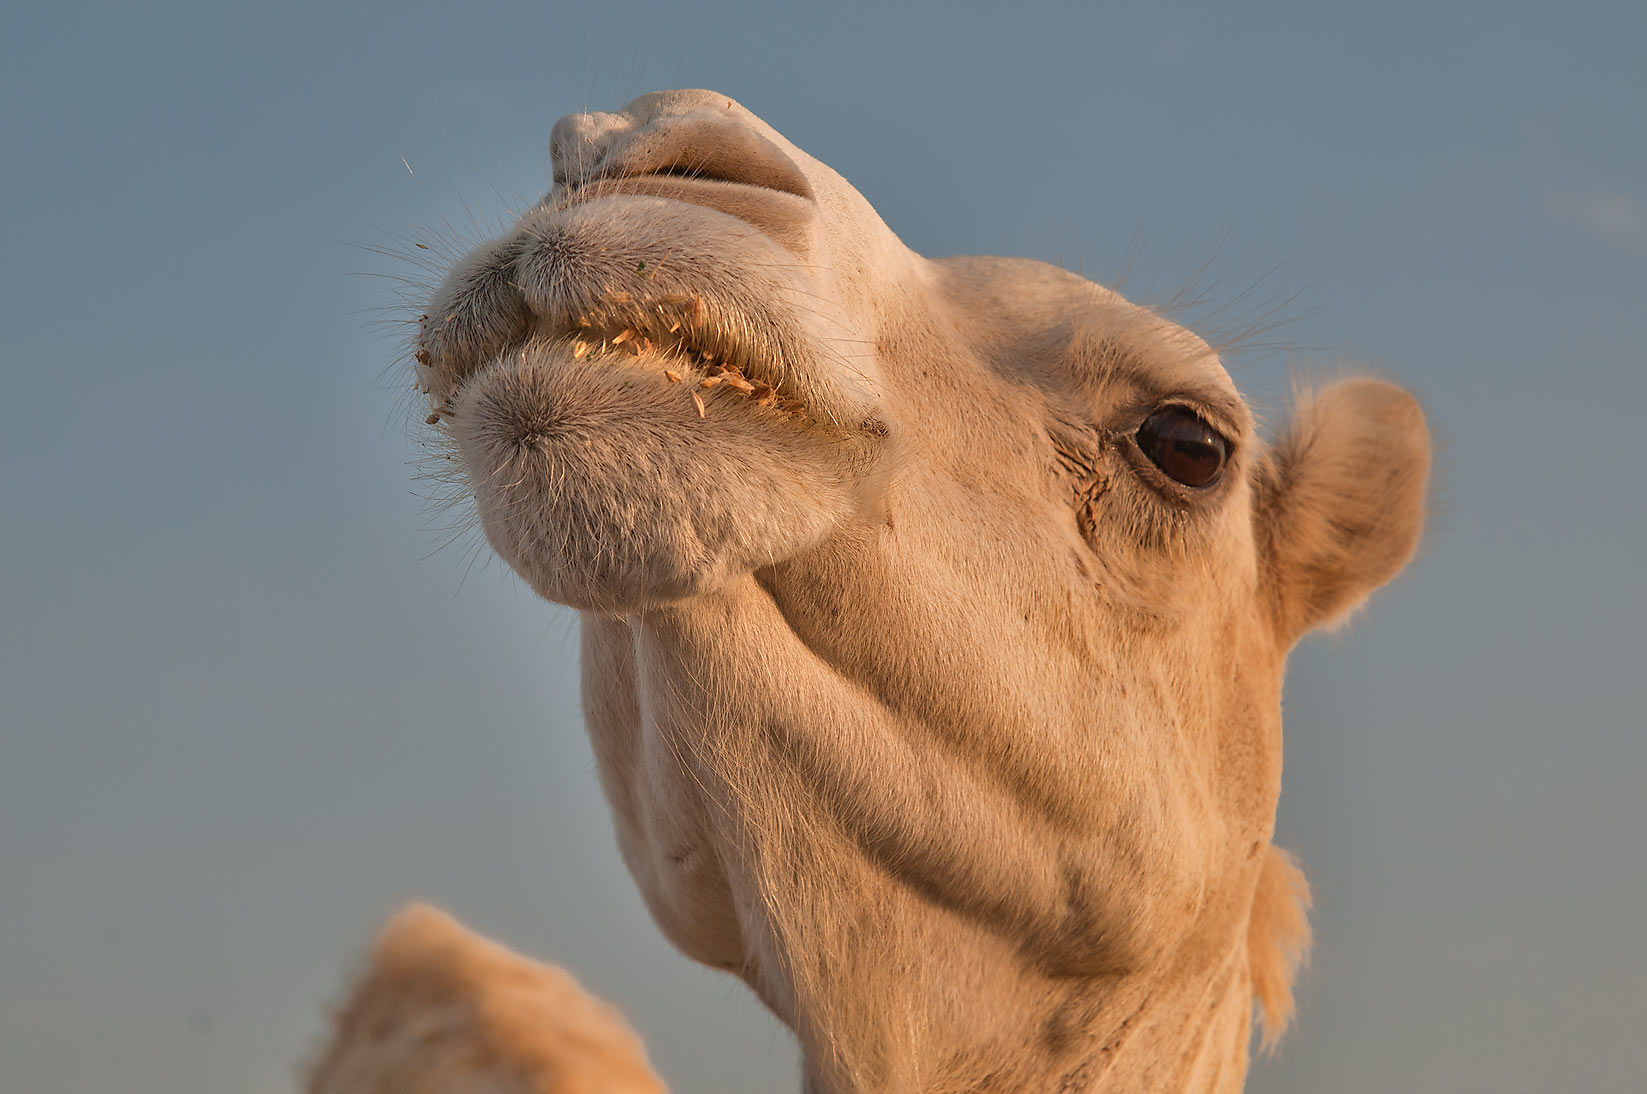 White camel at sunrise in Camel Market (Souq). Doha, Qatar